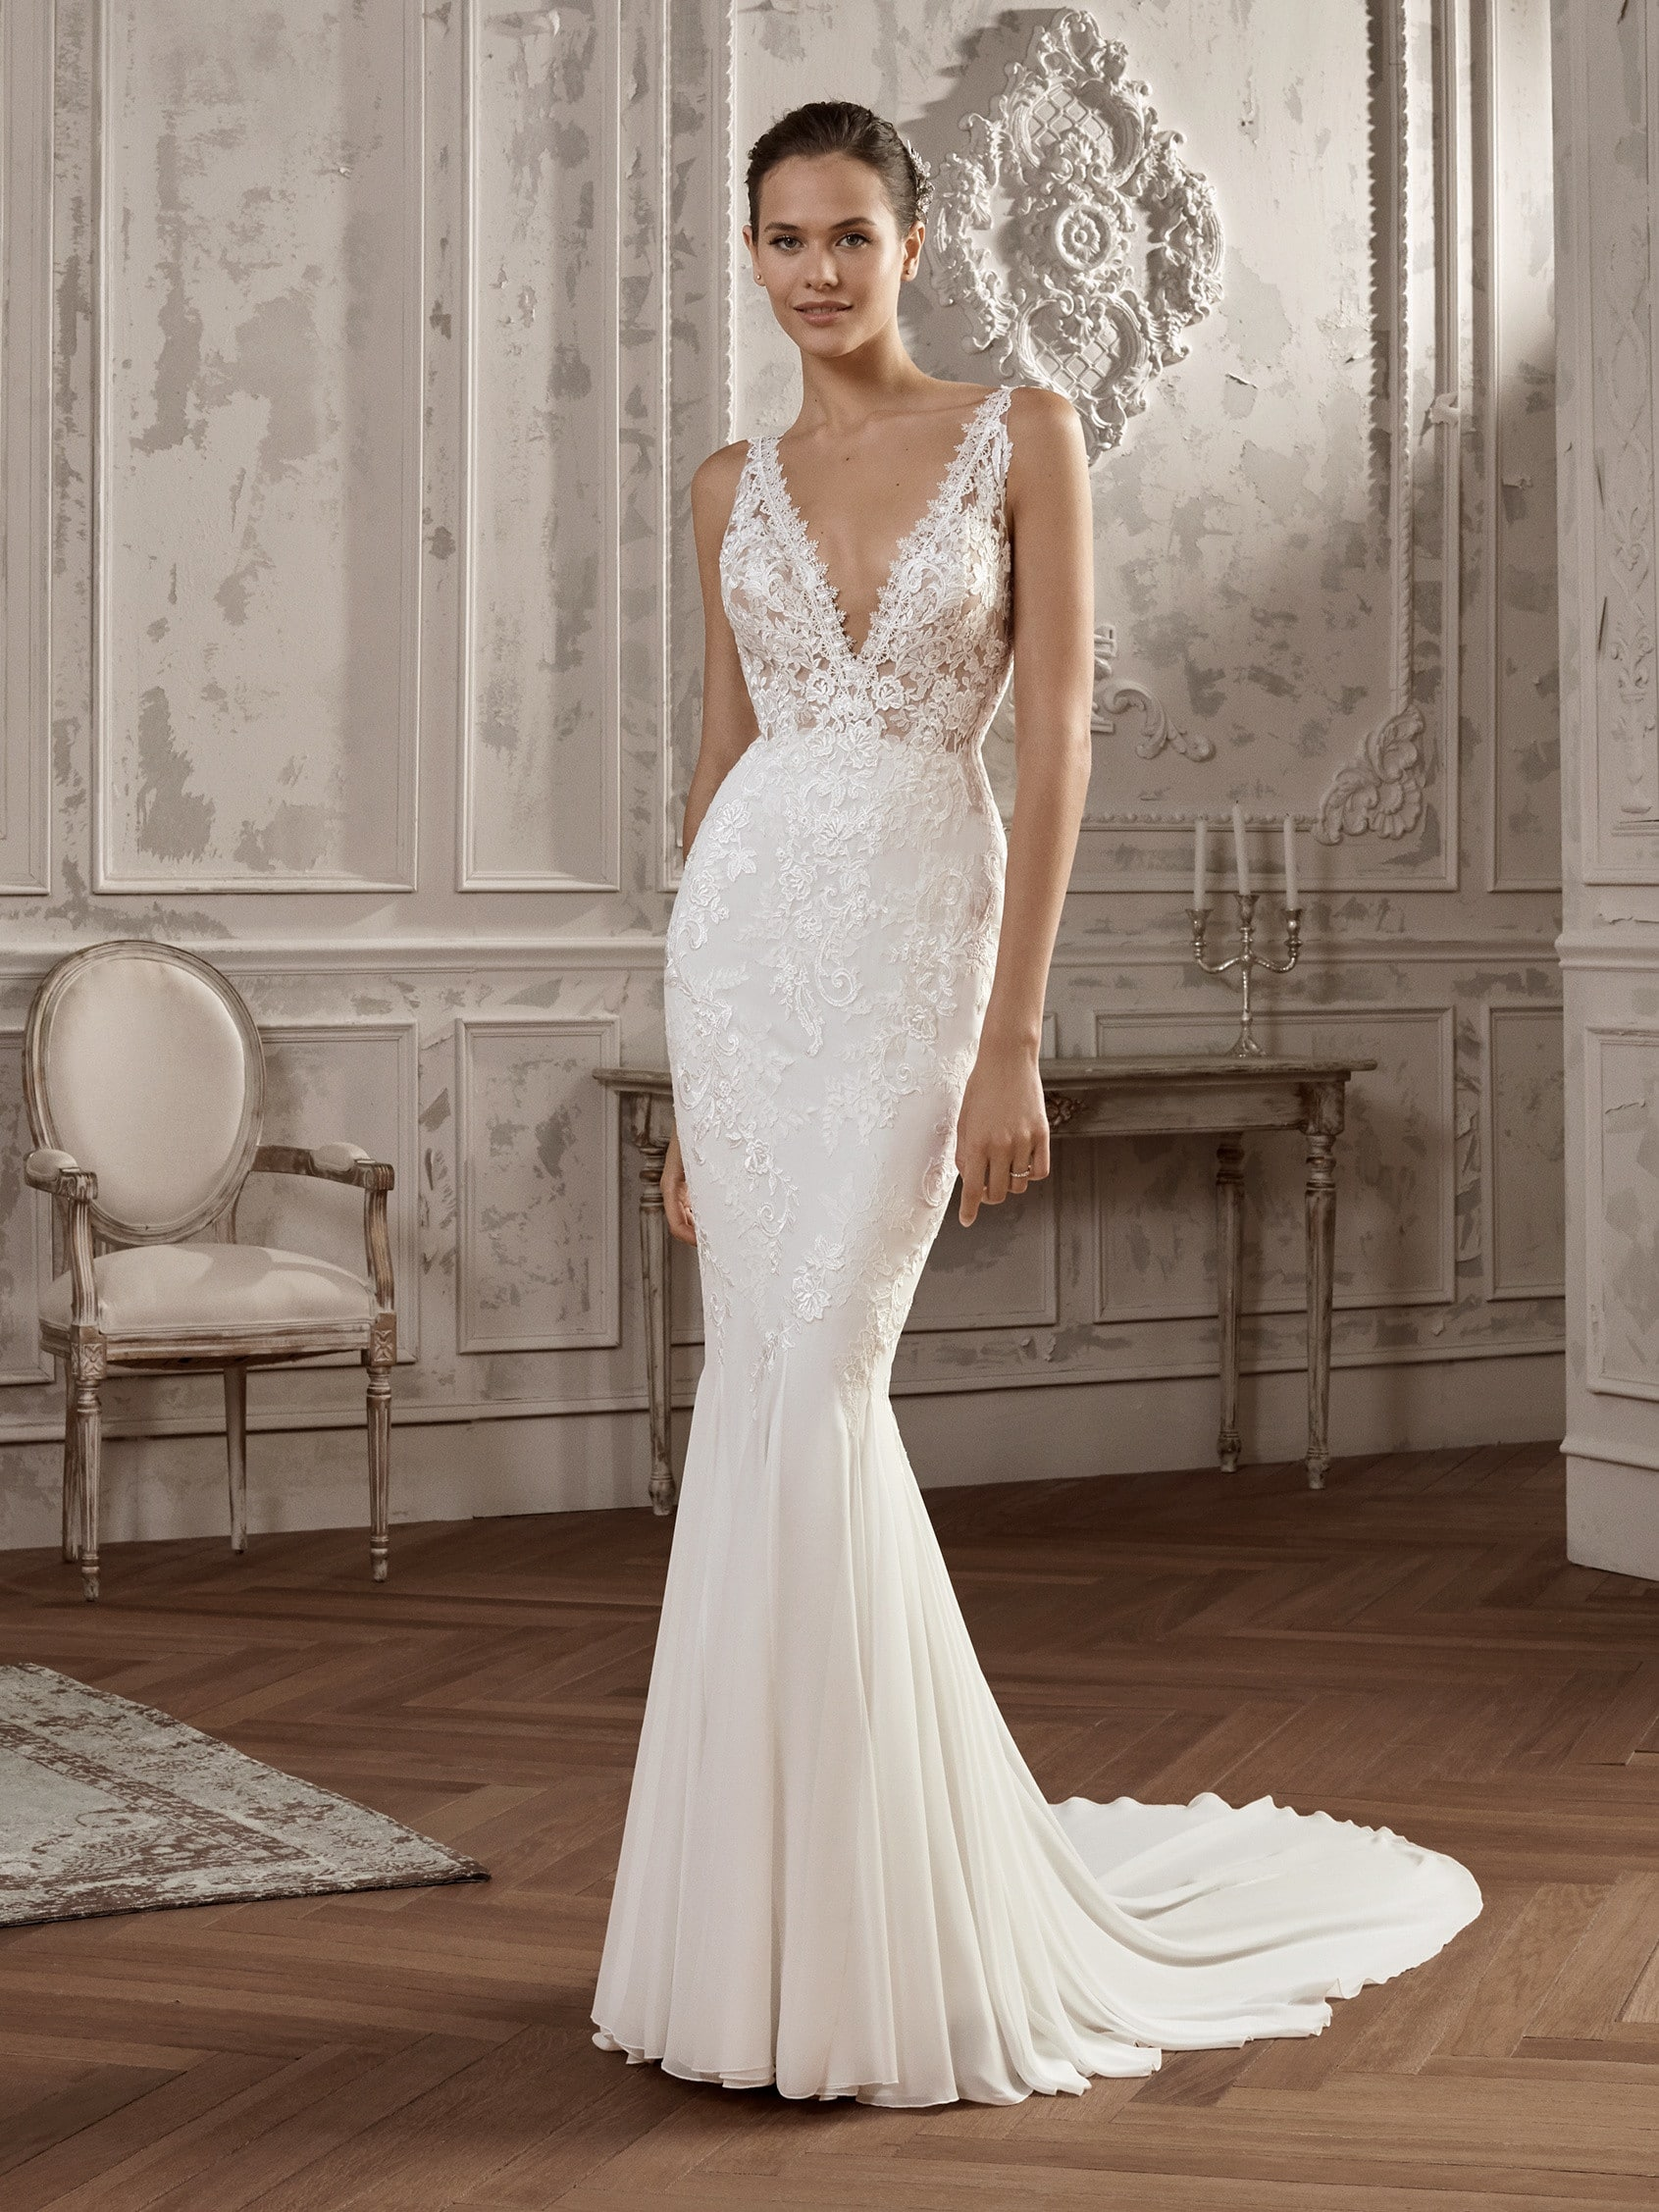 Mariée Paris De Robe 2019 Alcalasan Patrick Collection Hrsqdt zVSMUp